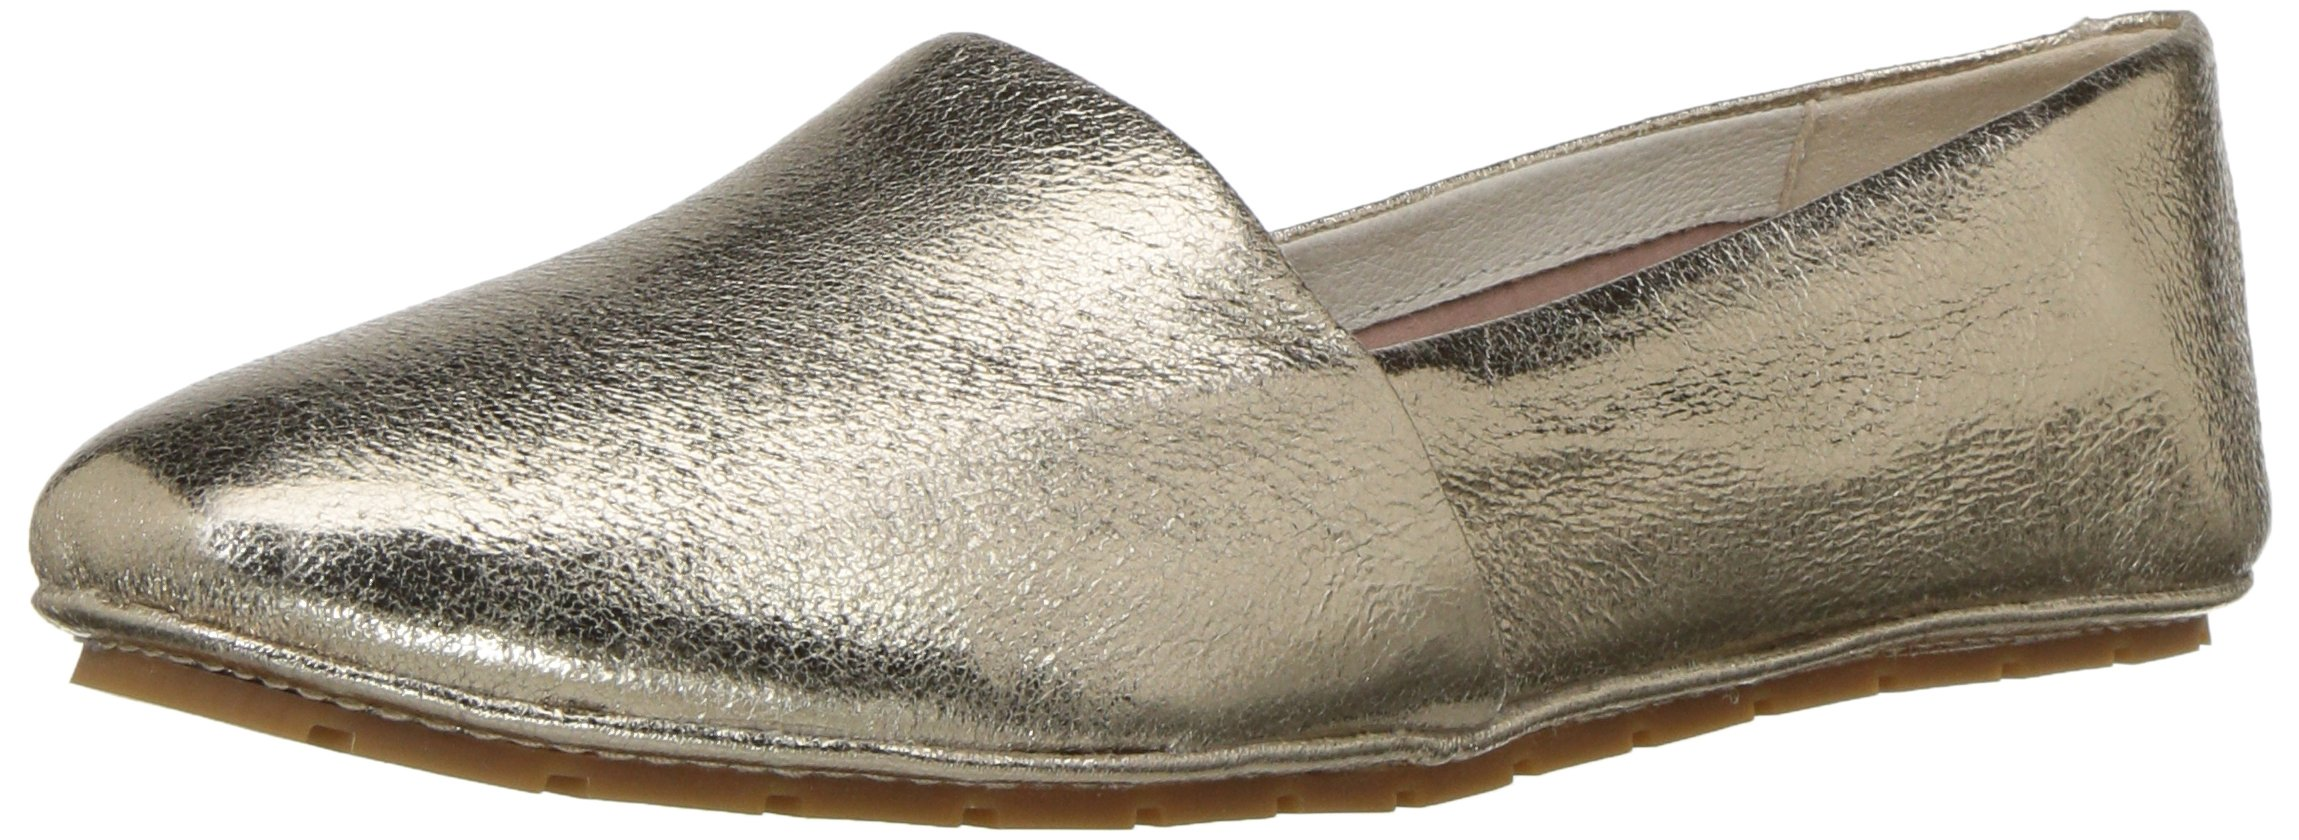 Kenneth Cole New York Women's Jordyn Slip on Metallic Loafer Flat, Gold, 11 Medium US